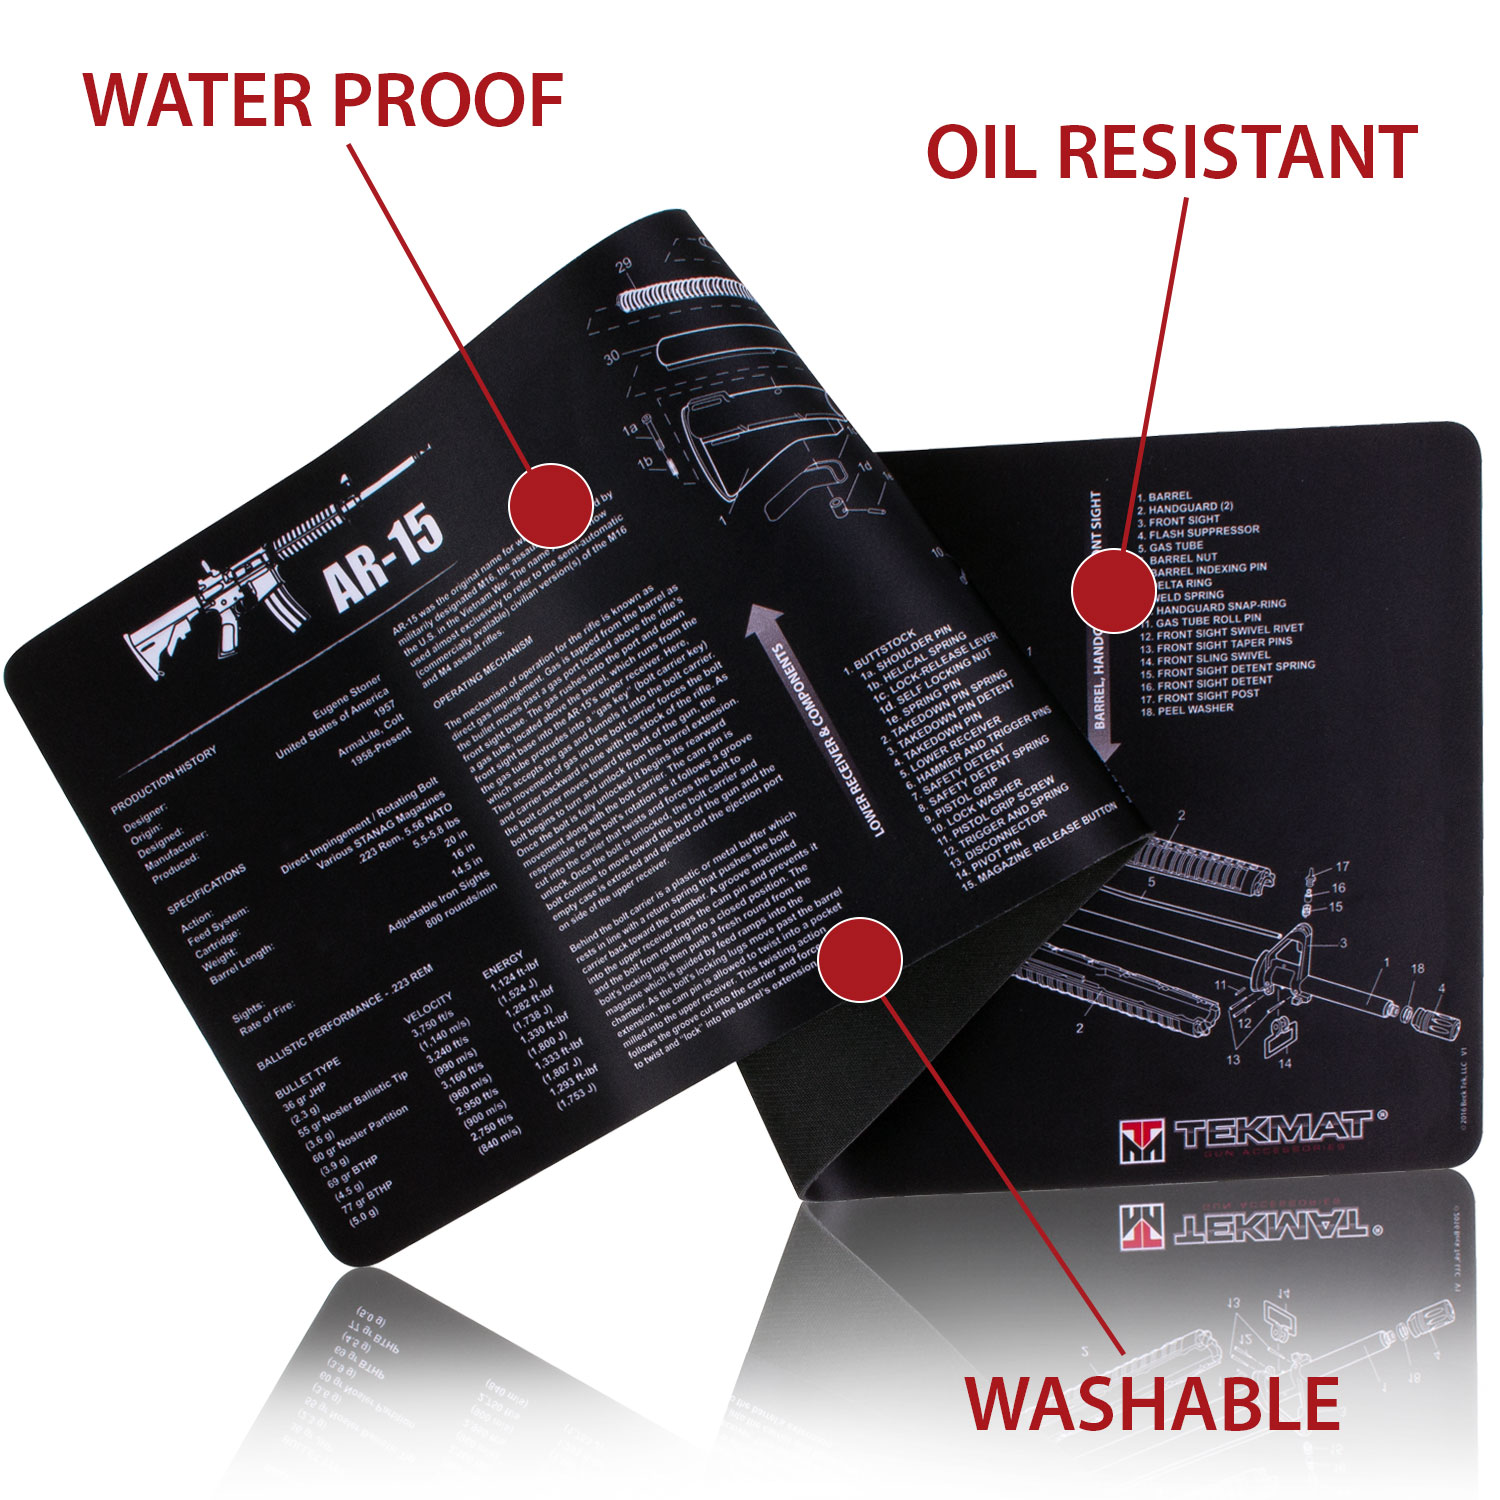 Tekmat 1911 Handgun Mat 171911 By Item No T Safety Diagram Also With Exploded Parts View Gun Cleaning Description Reviews 0 Product Information